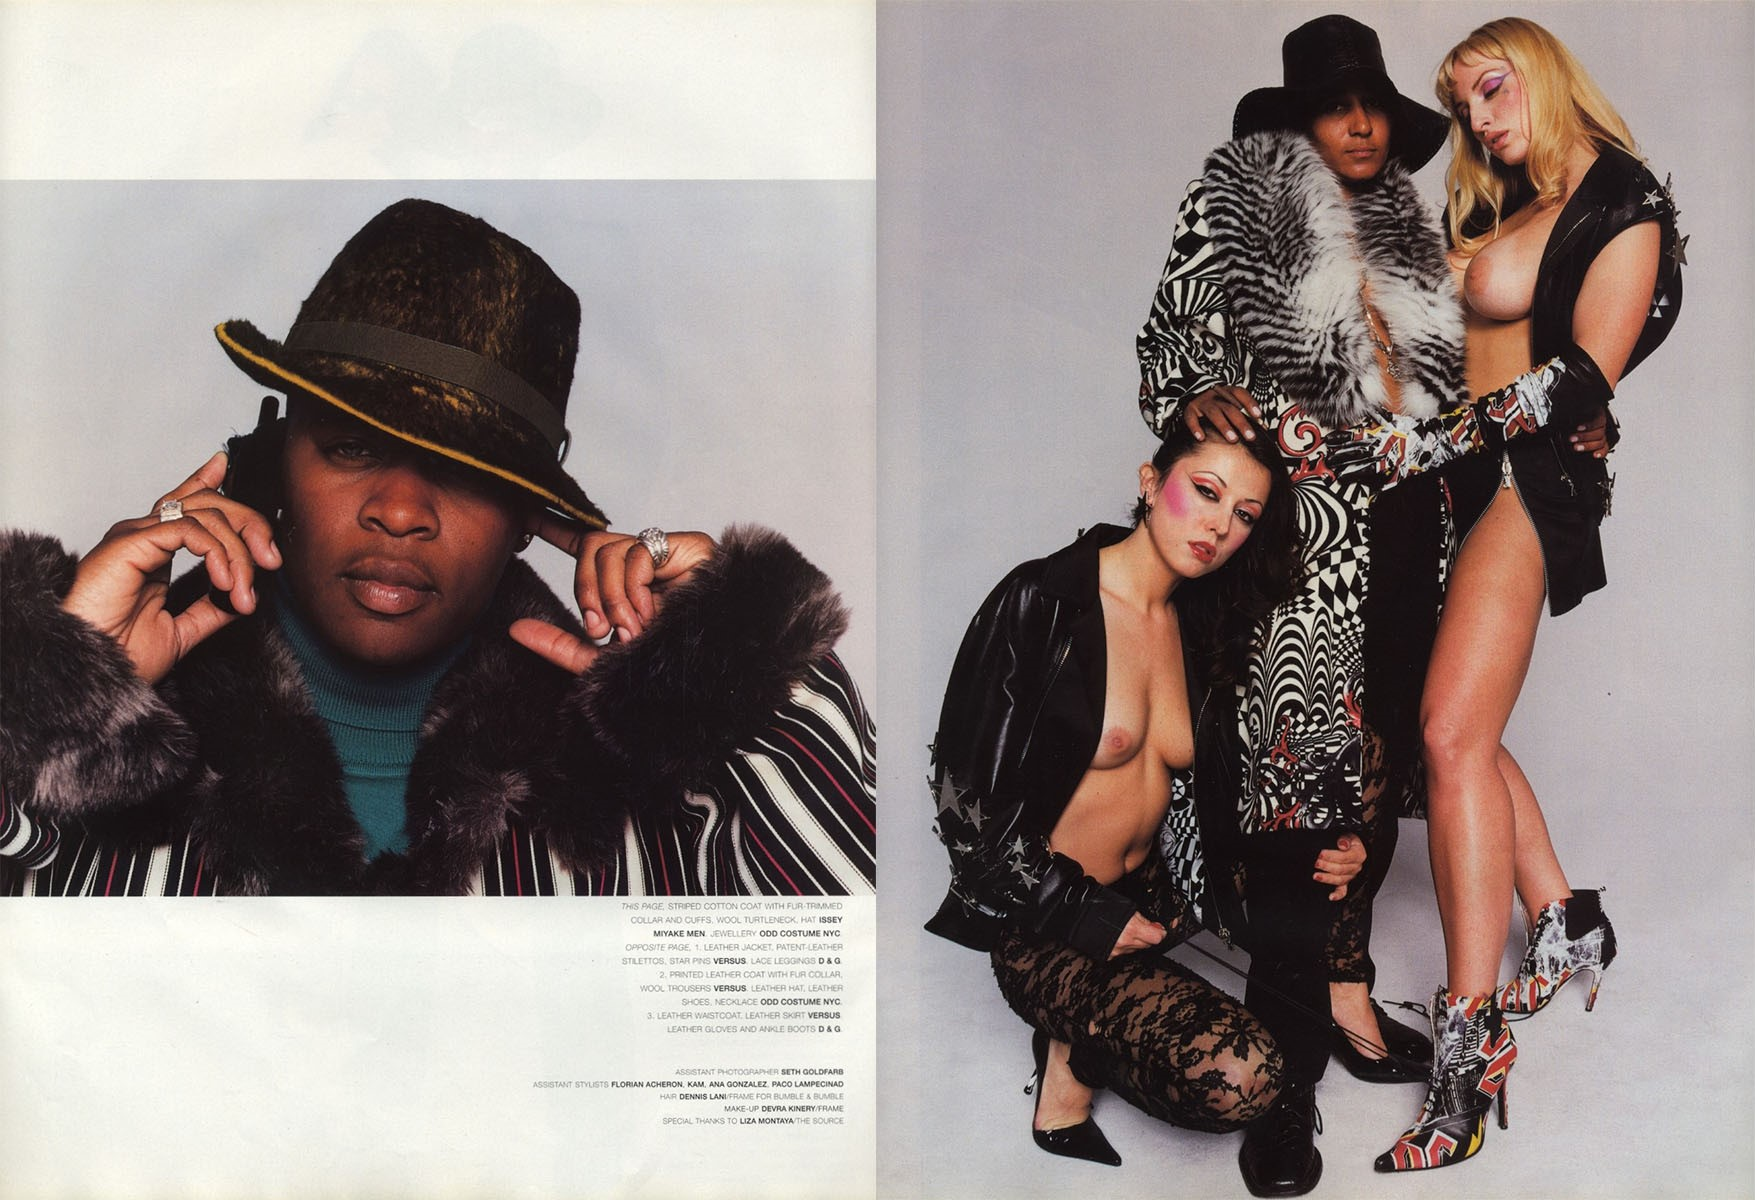 gang bang photography terry richardson stylist jason farrer vogue hommes international fw 2001 02 6